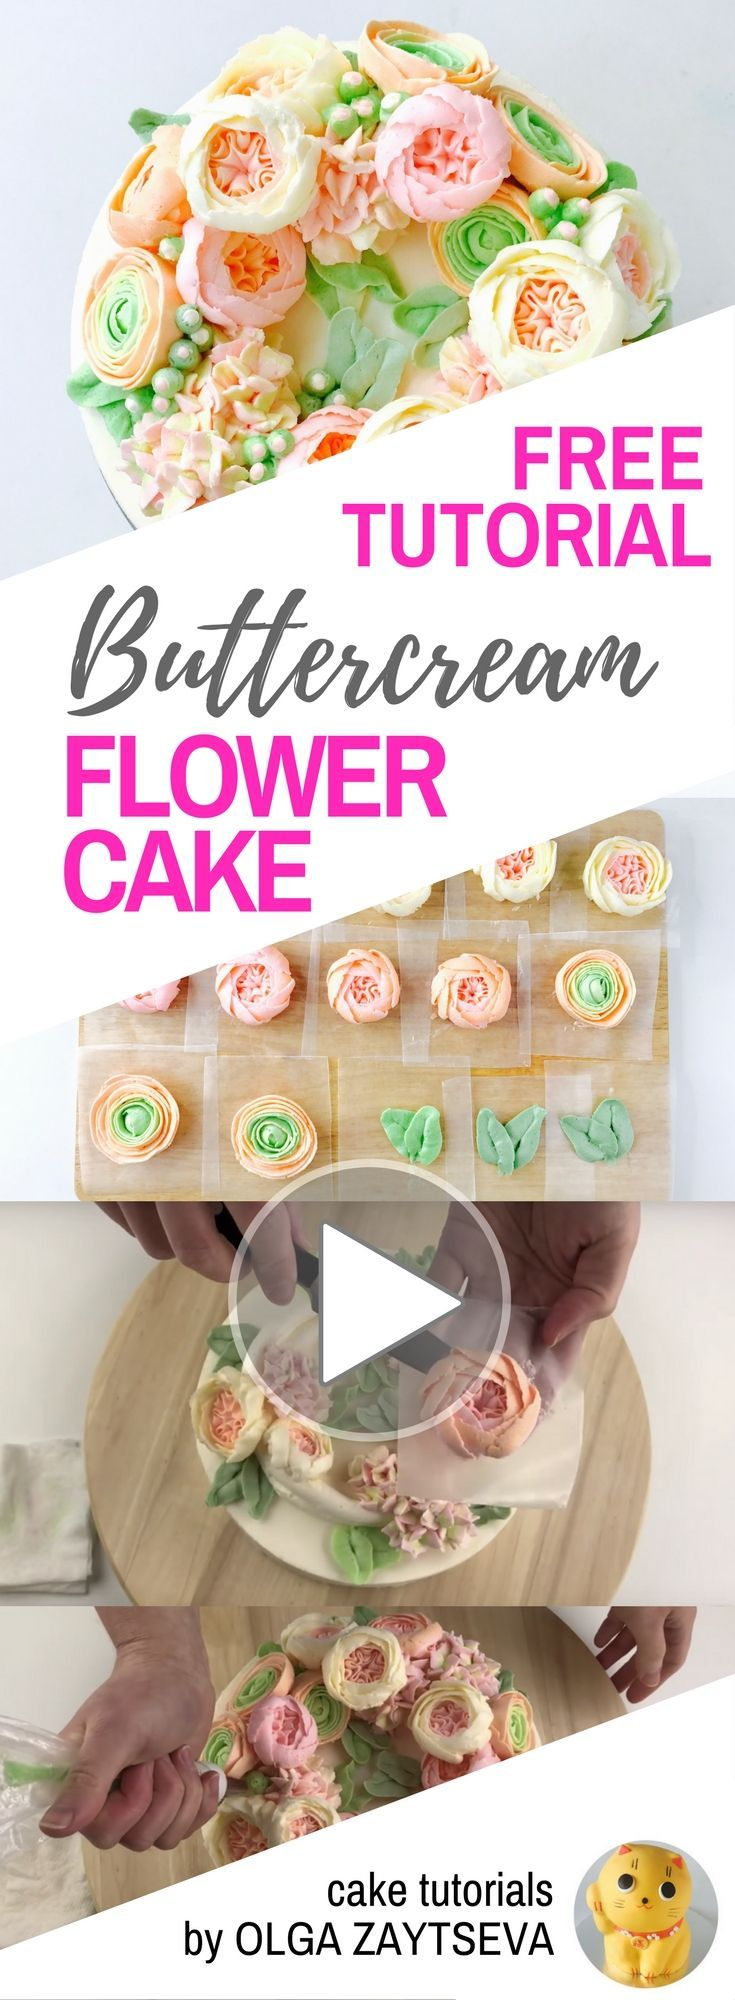 HOT CAKE TRENDS How to make Ranunculus and Hydrangea Buttercream flower cake - Cake decorating tutorial by Olga Zaytseva. Learn how to pipe Roses, Ranunculus and Hydrangeas and create a buttercream flower wreath cake.